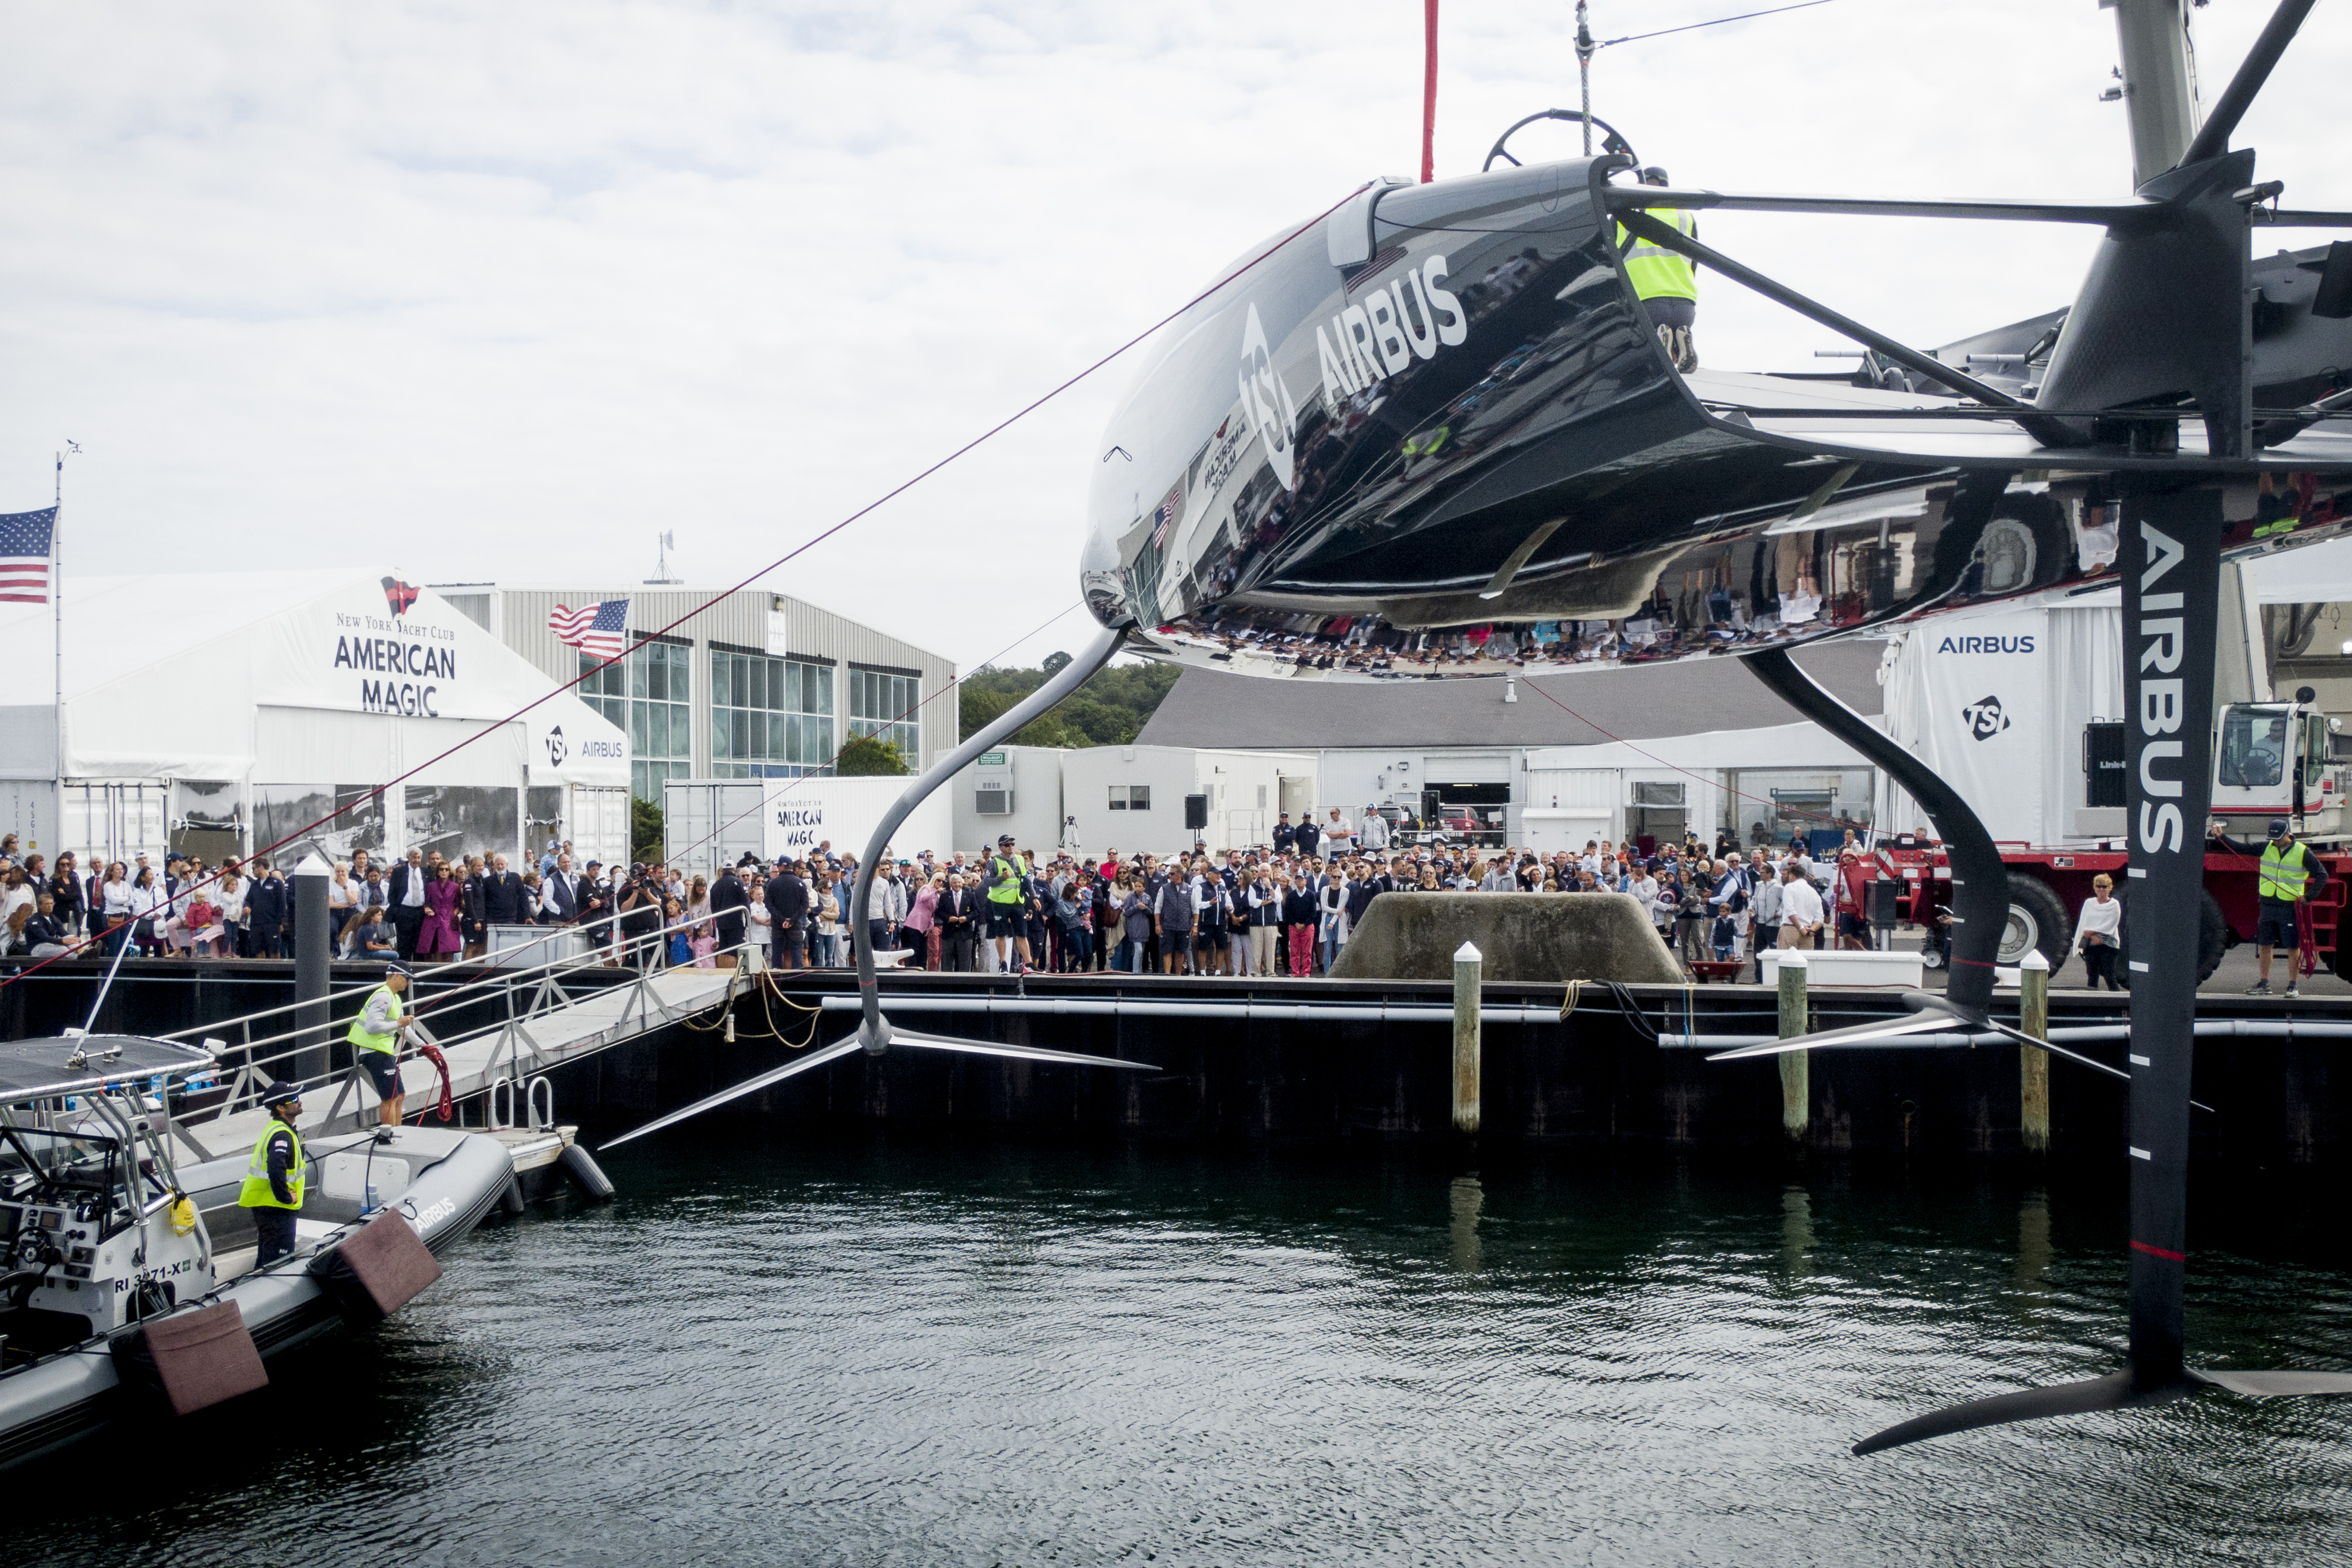 Defiant, New York Yacht Club American Magic's First AC75, is officially launched and named